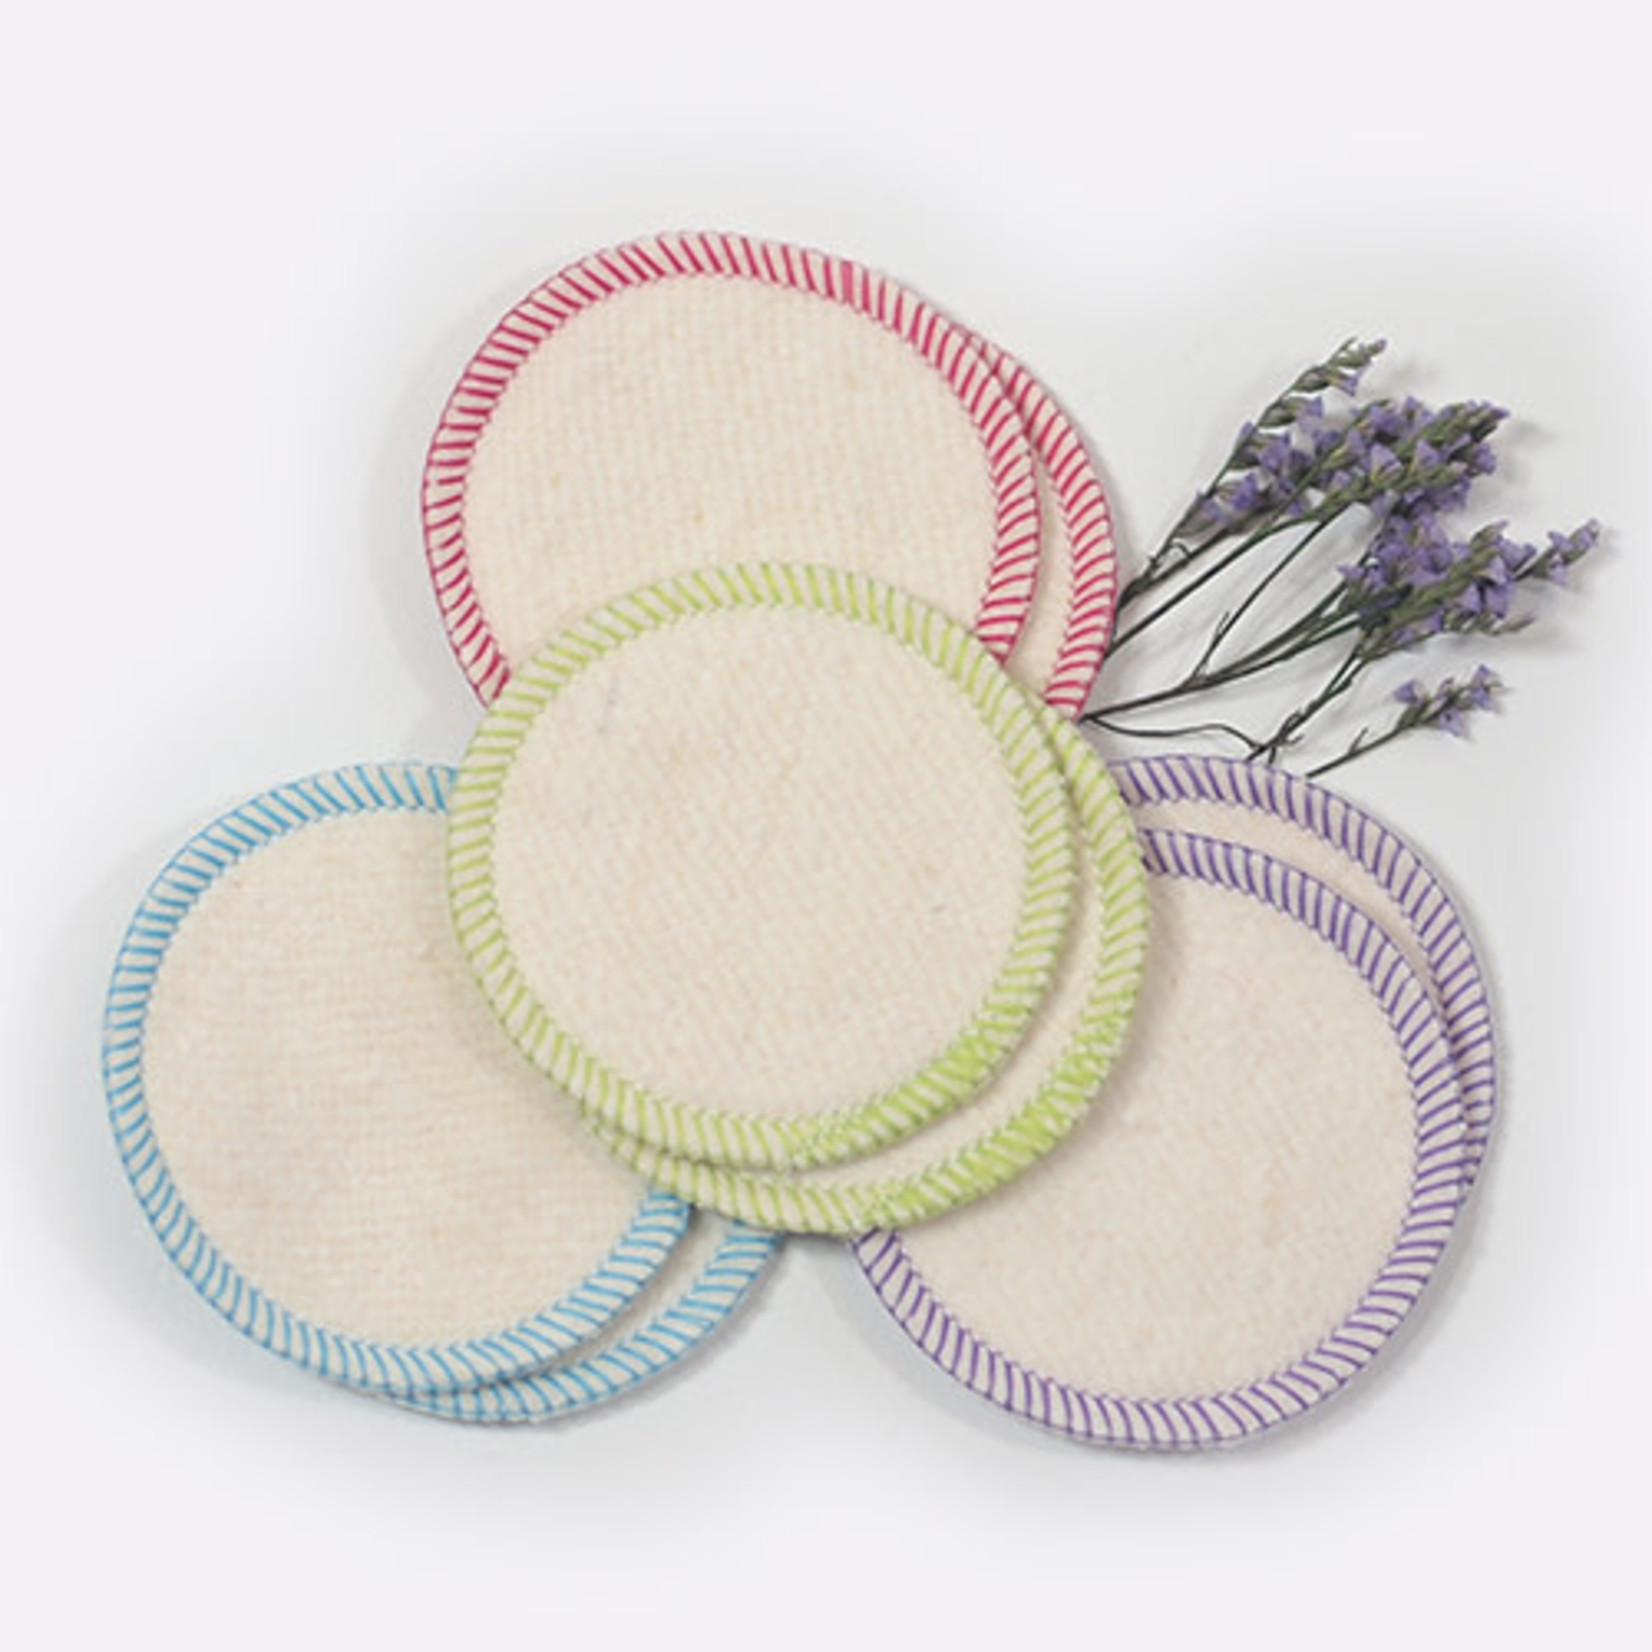 OKO CREATIONS ORGANIC MAKEUP REMOVAL PADS (8 PACK)